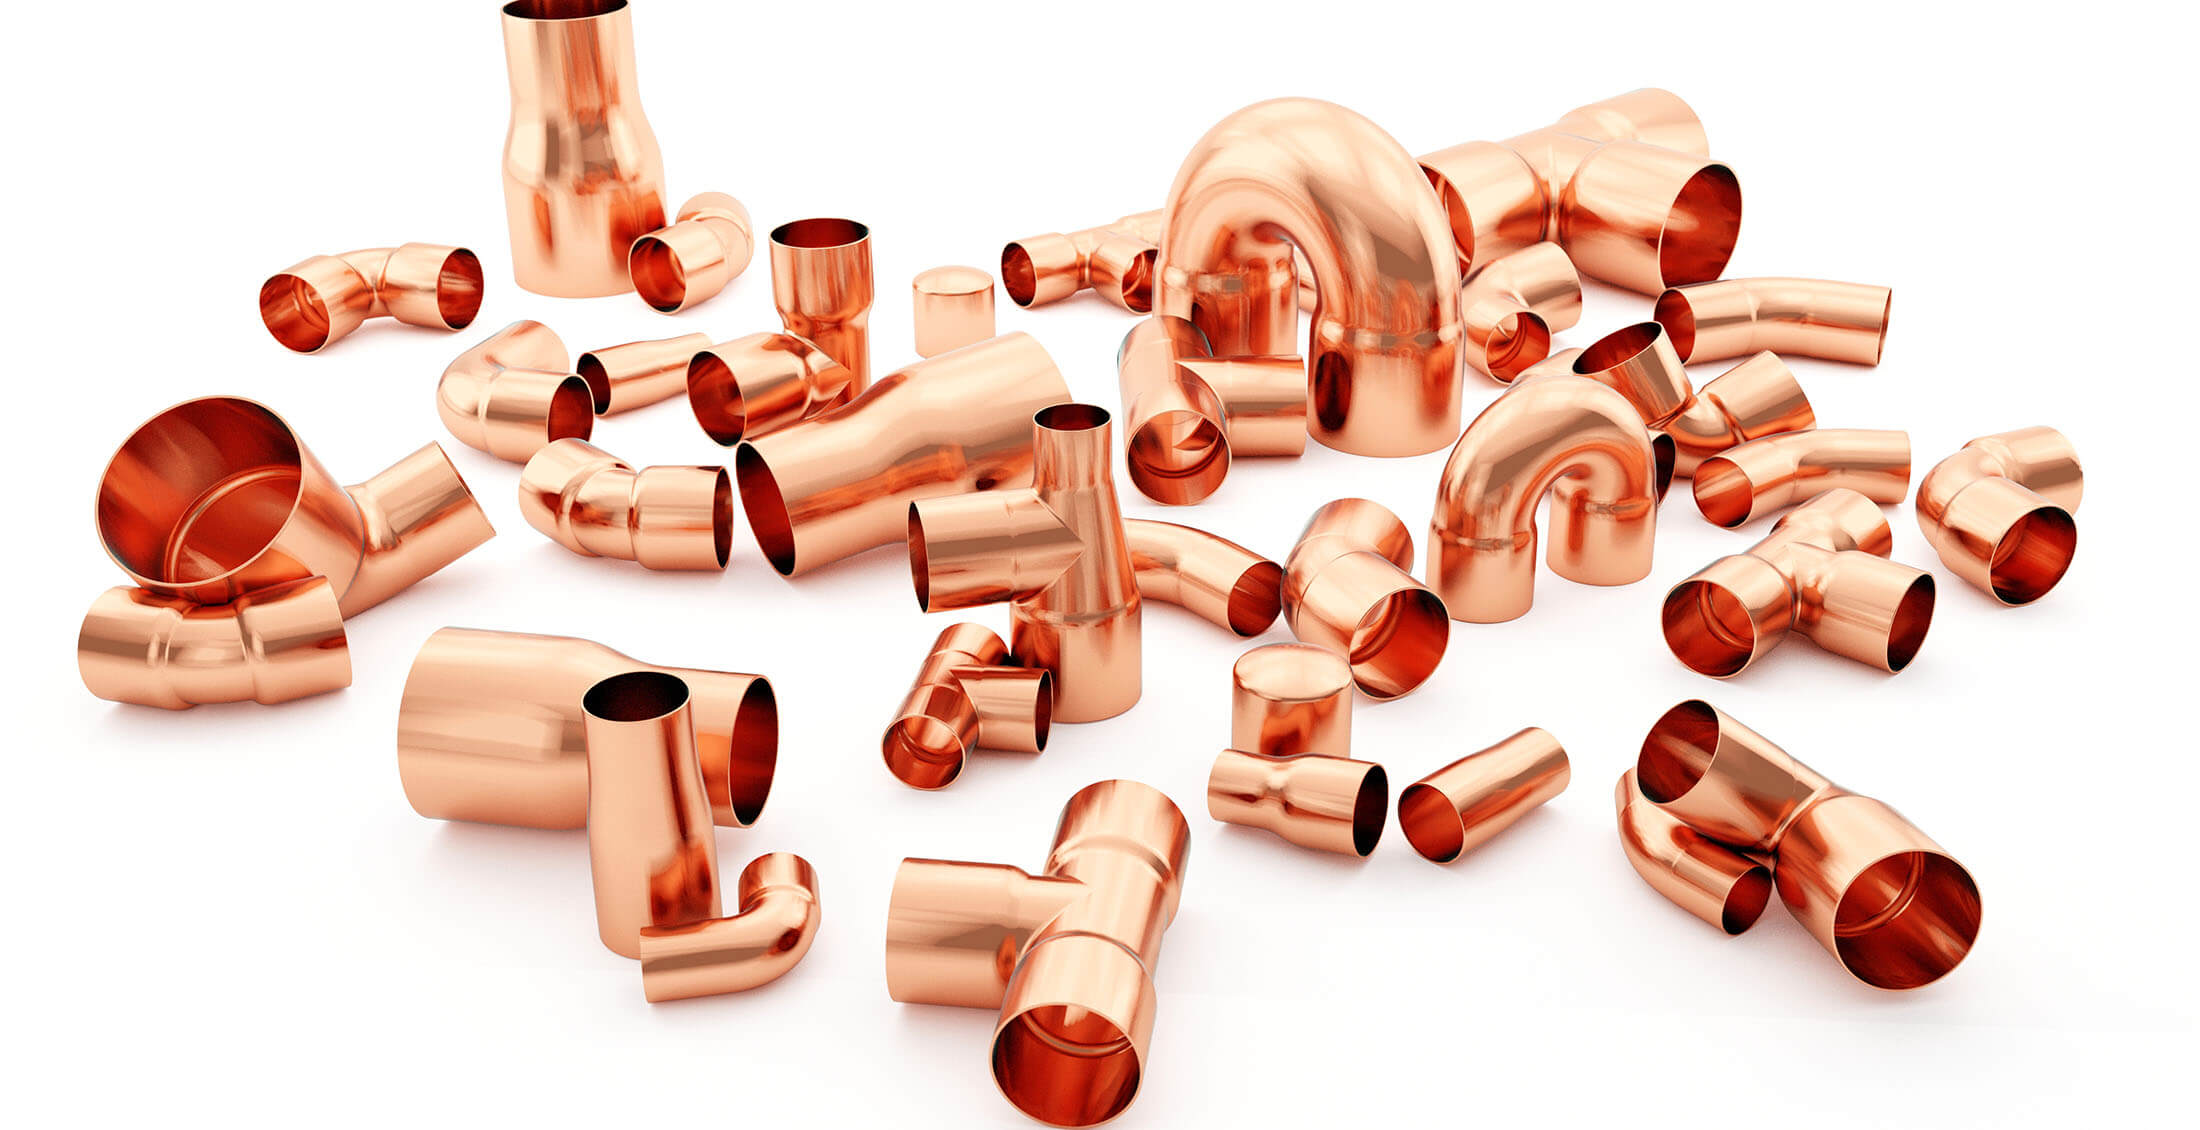 Endfeed copper pipe Fittings at WP Pipeline Merchants